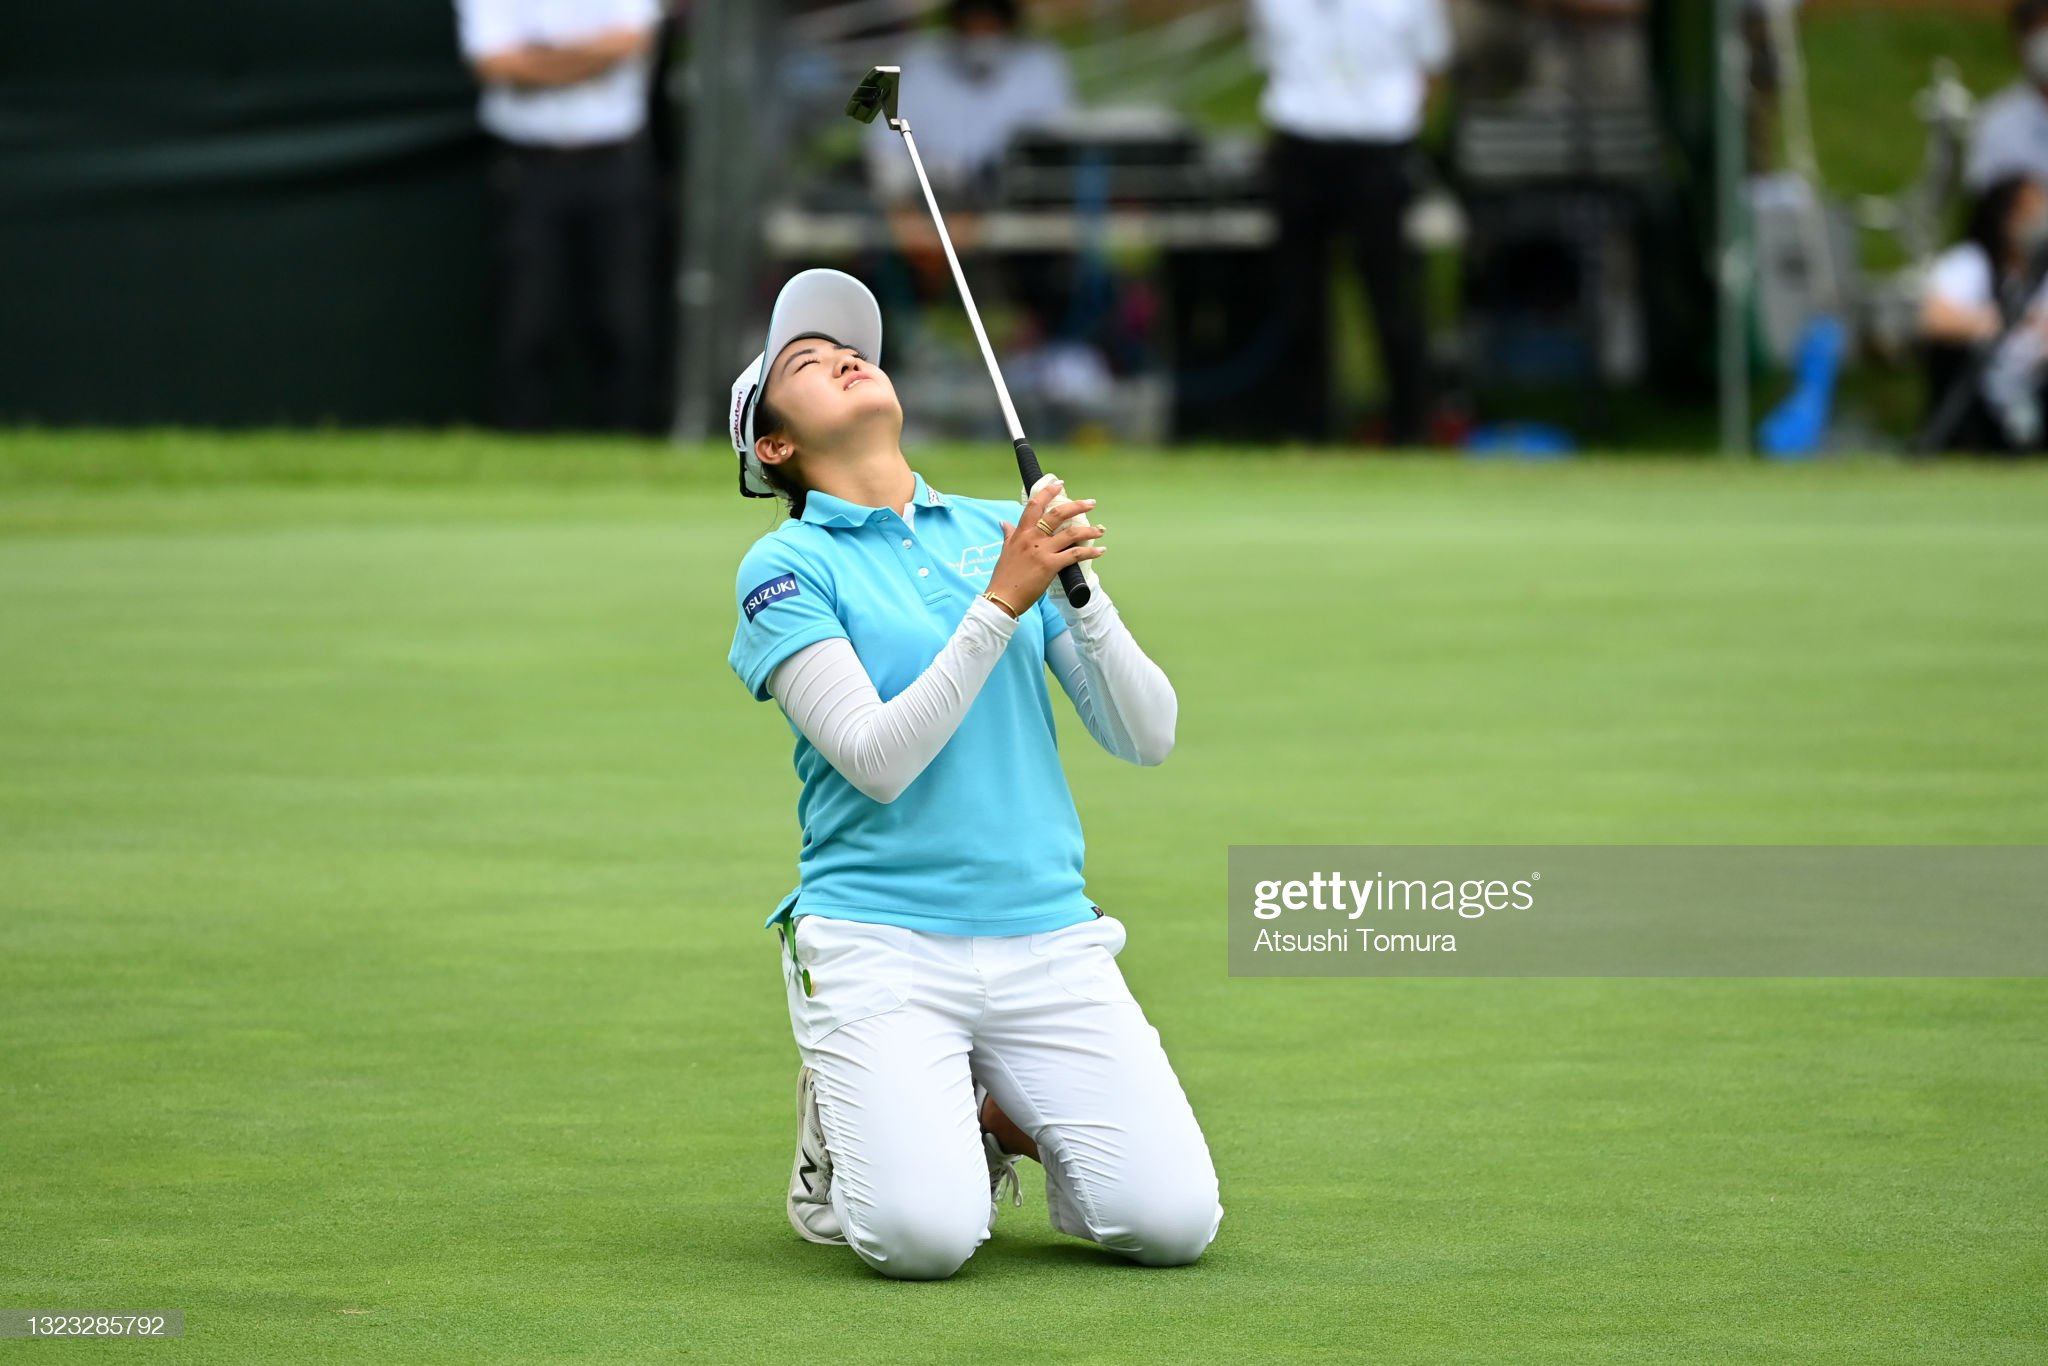 https://media.gettyimages.com/photos/mone-inami-of-japan-reacts-after-missing-the-birdie-putt-on-the-18th-picture-id1323285792?s=2048x2048